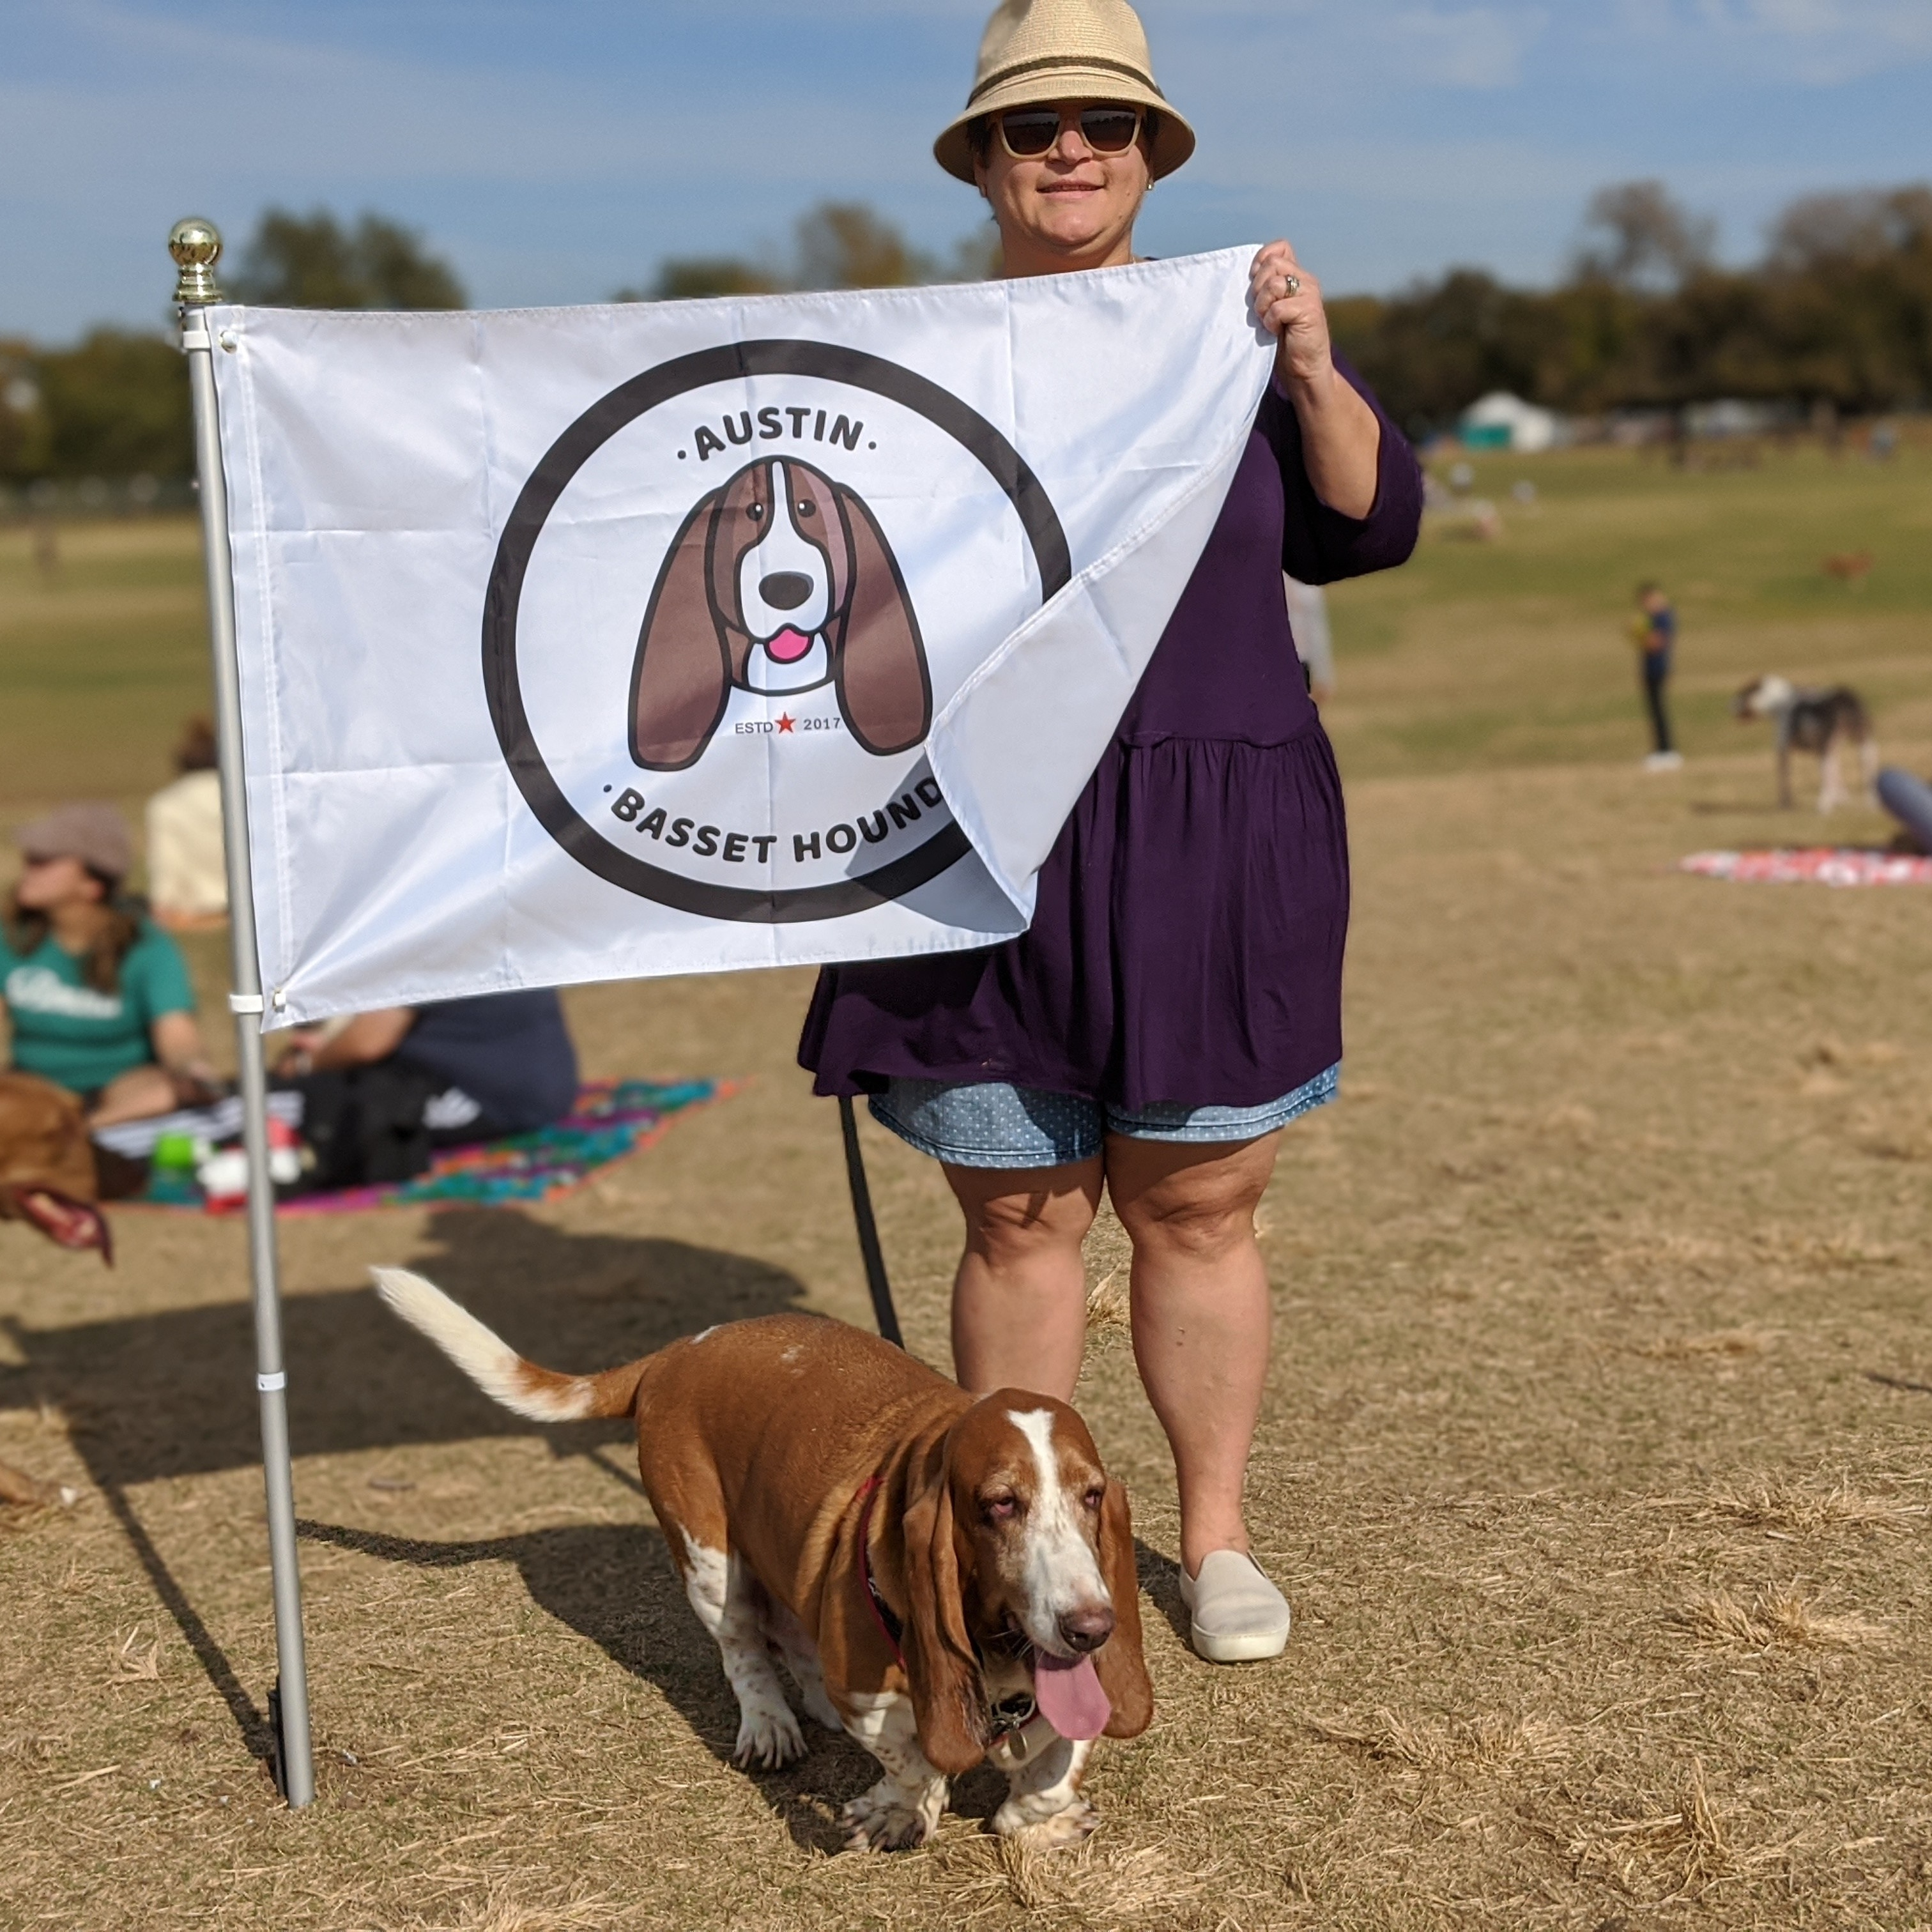 Tobi and Gus with a Basset Hound flag